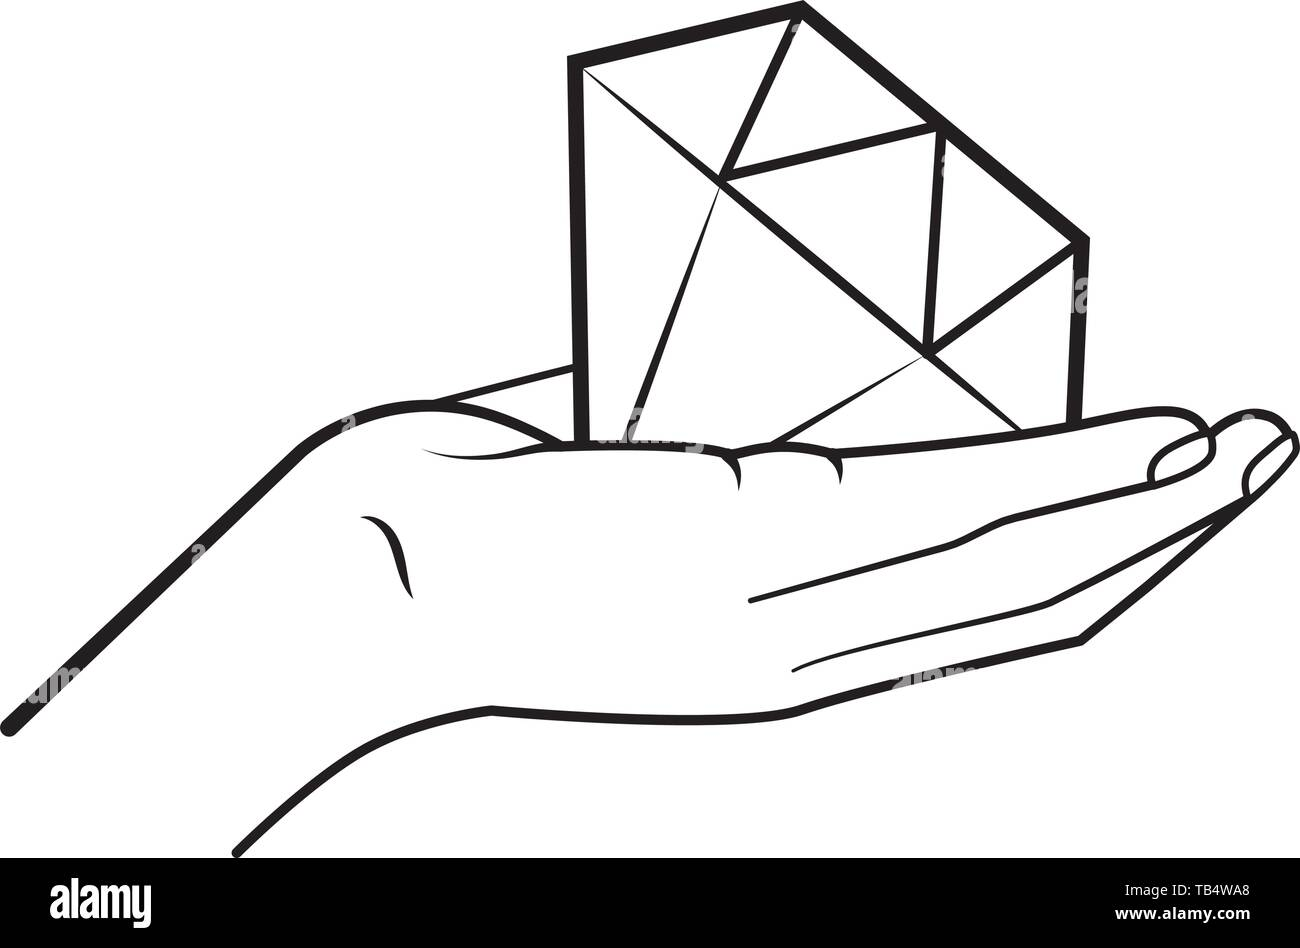 hand holding diamond icon cartoon black and white vector illustration graphic design - Stock Image